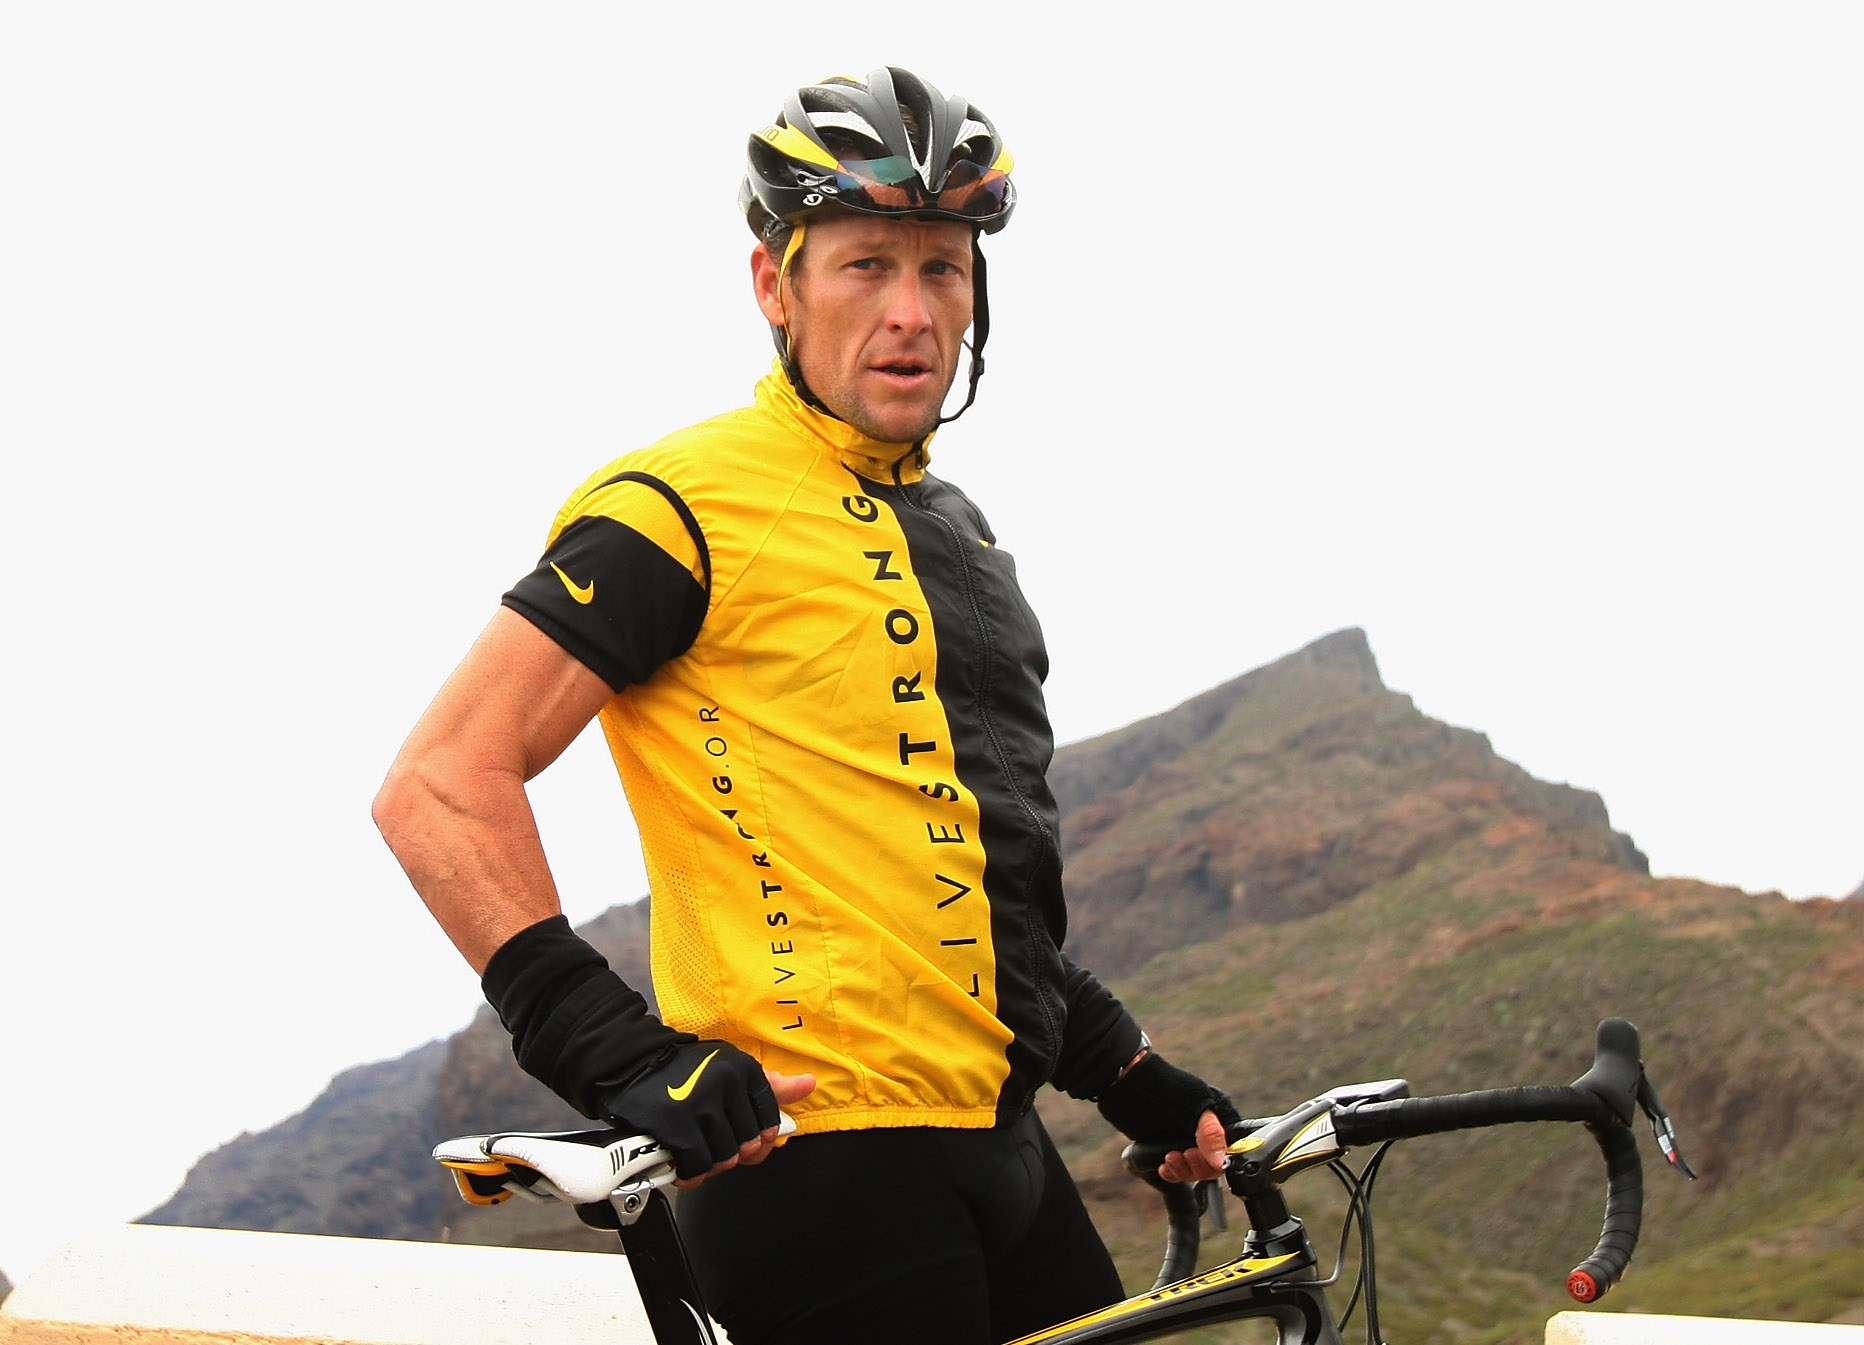 Lance armstrong will confess doping to oprah nymag